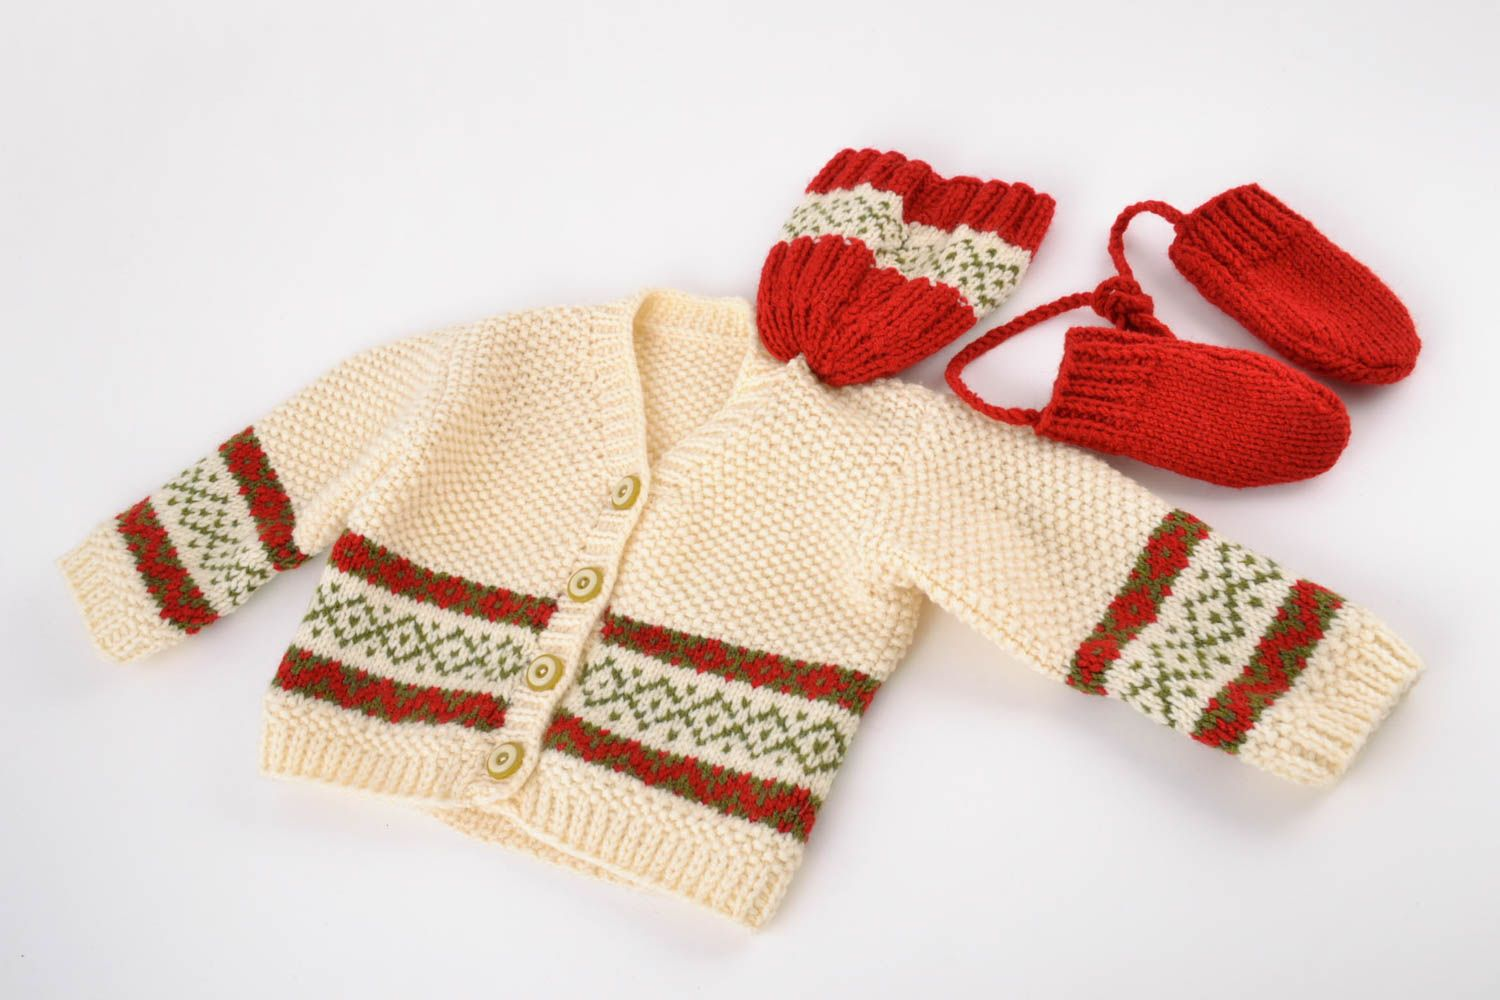 b20ab791ac1 vests Set of handmade warm knit baby boy clothes 3 items cardigan mittens  and hat ...